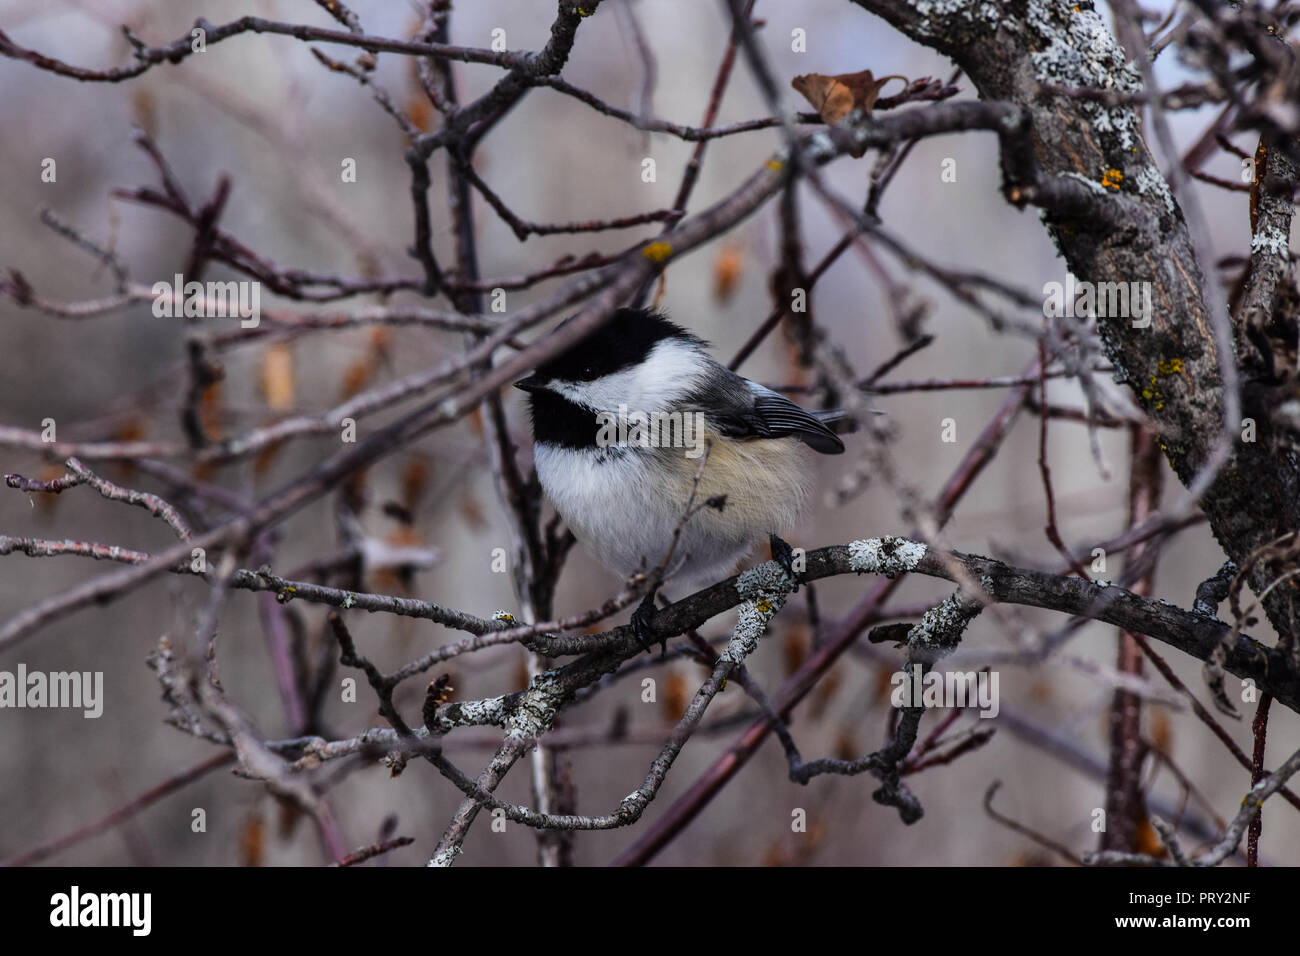 Chickadee on the branch of a tree - Stock Image